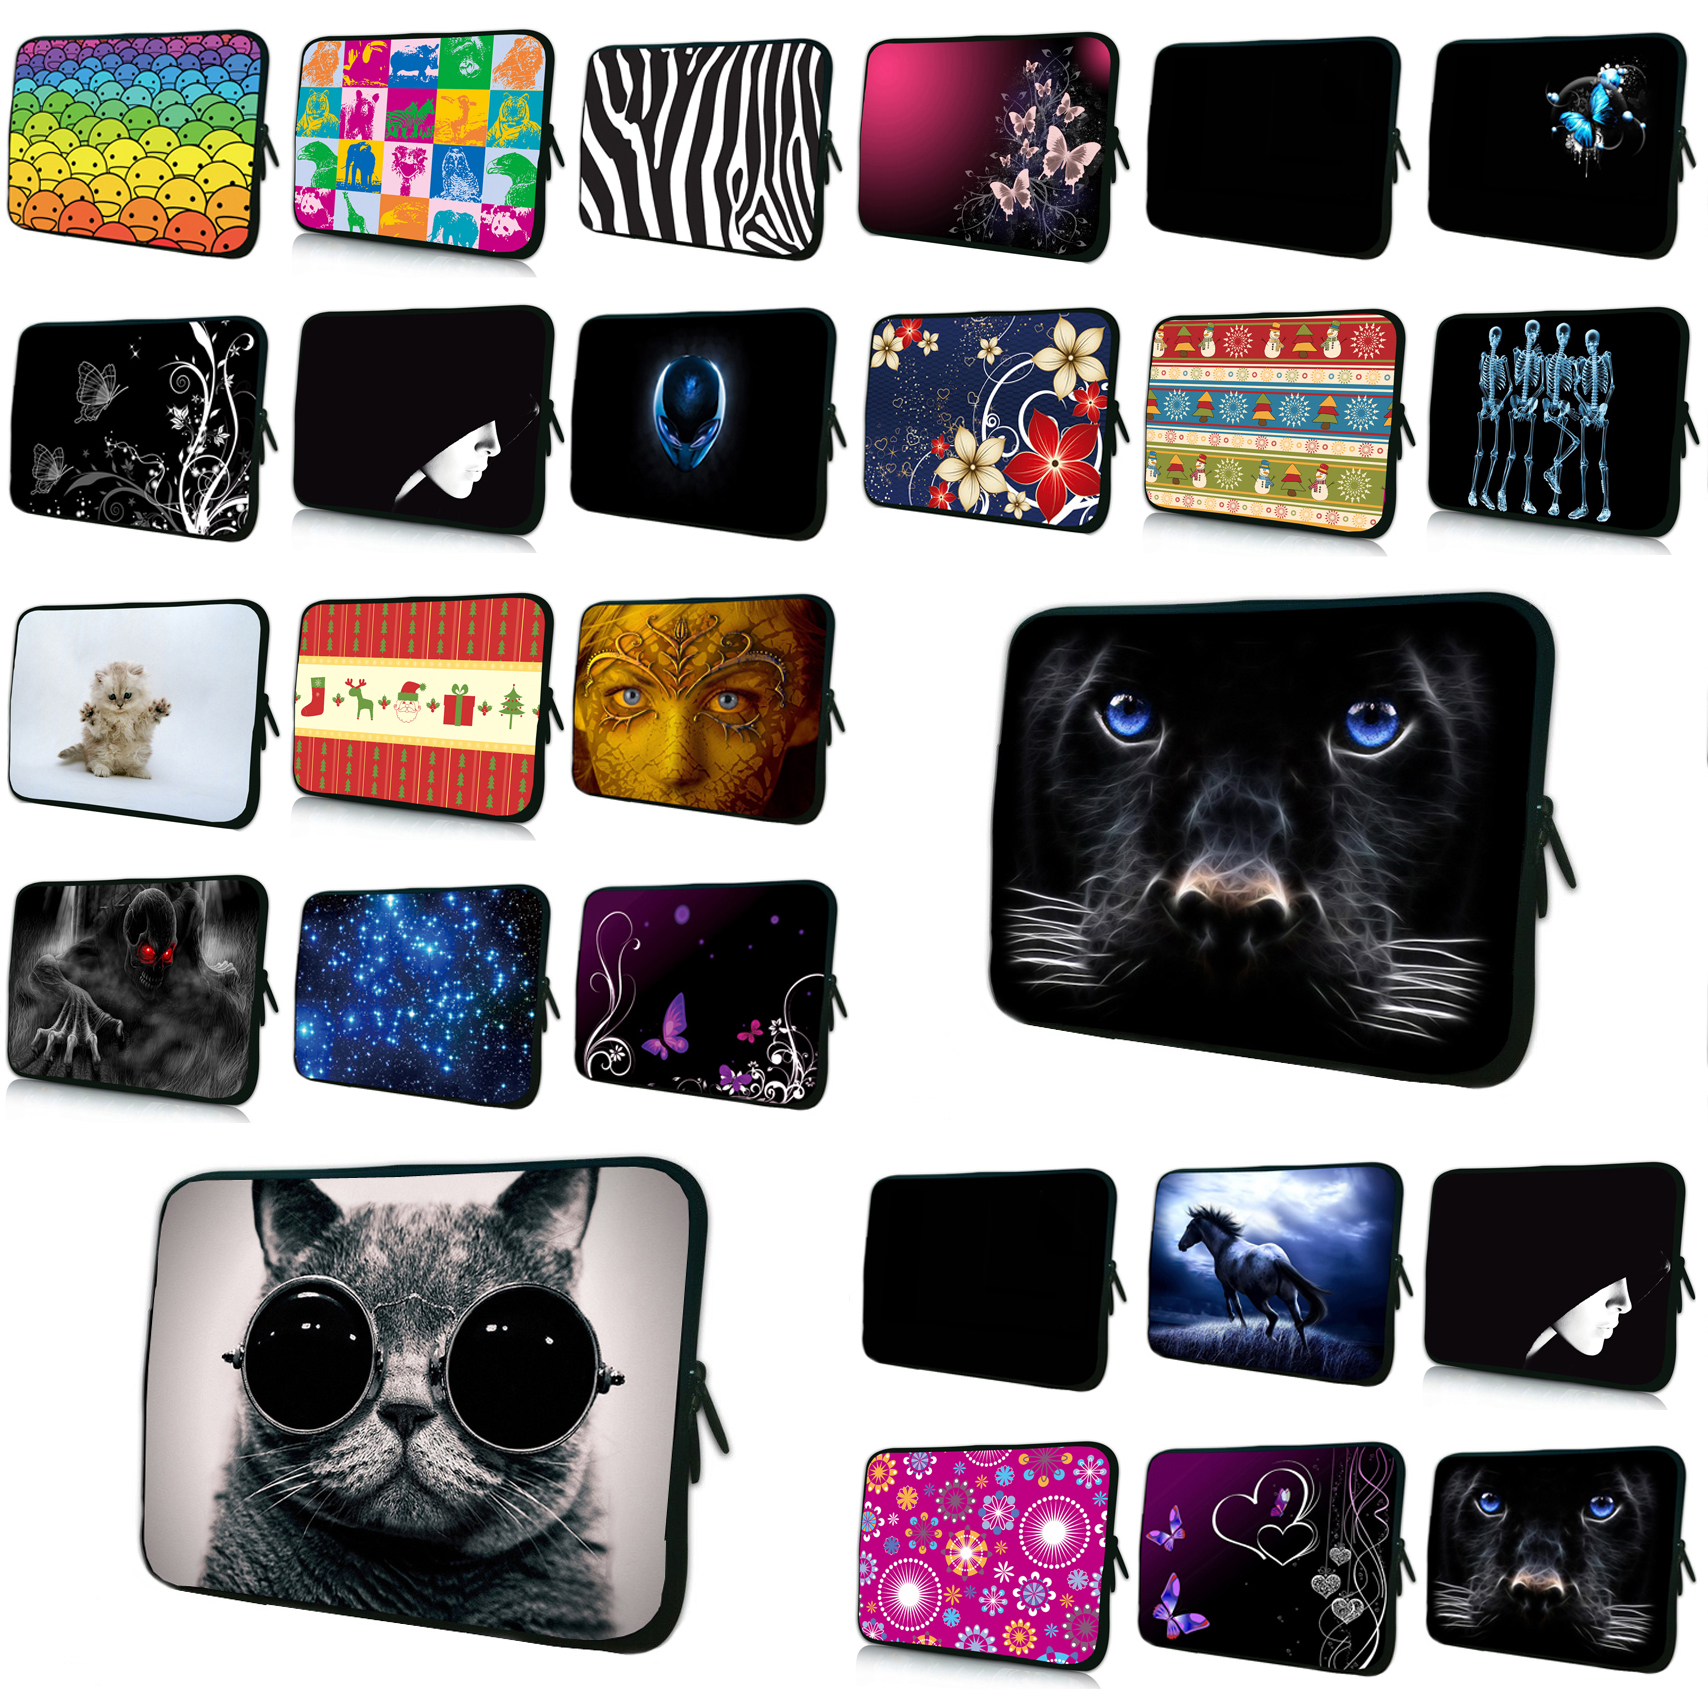 Notebook Slim Bags Cases 7 Tablet 10.1 Neoprene Liner Sleeve Pouch Bag For Xiaomi HP Macbook 11.6 12 13.3 14 15.4 17 Briefcase